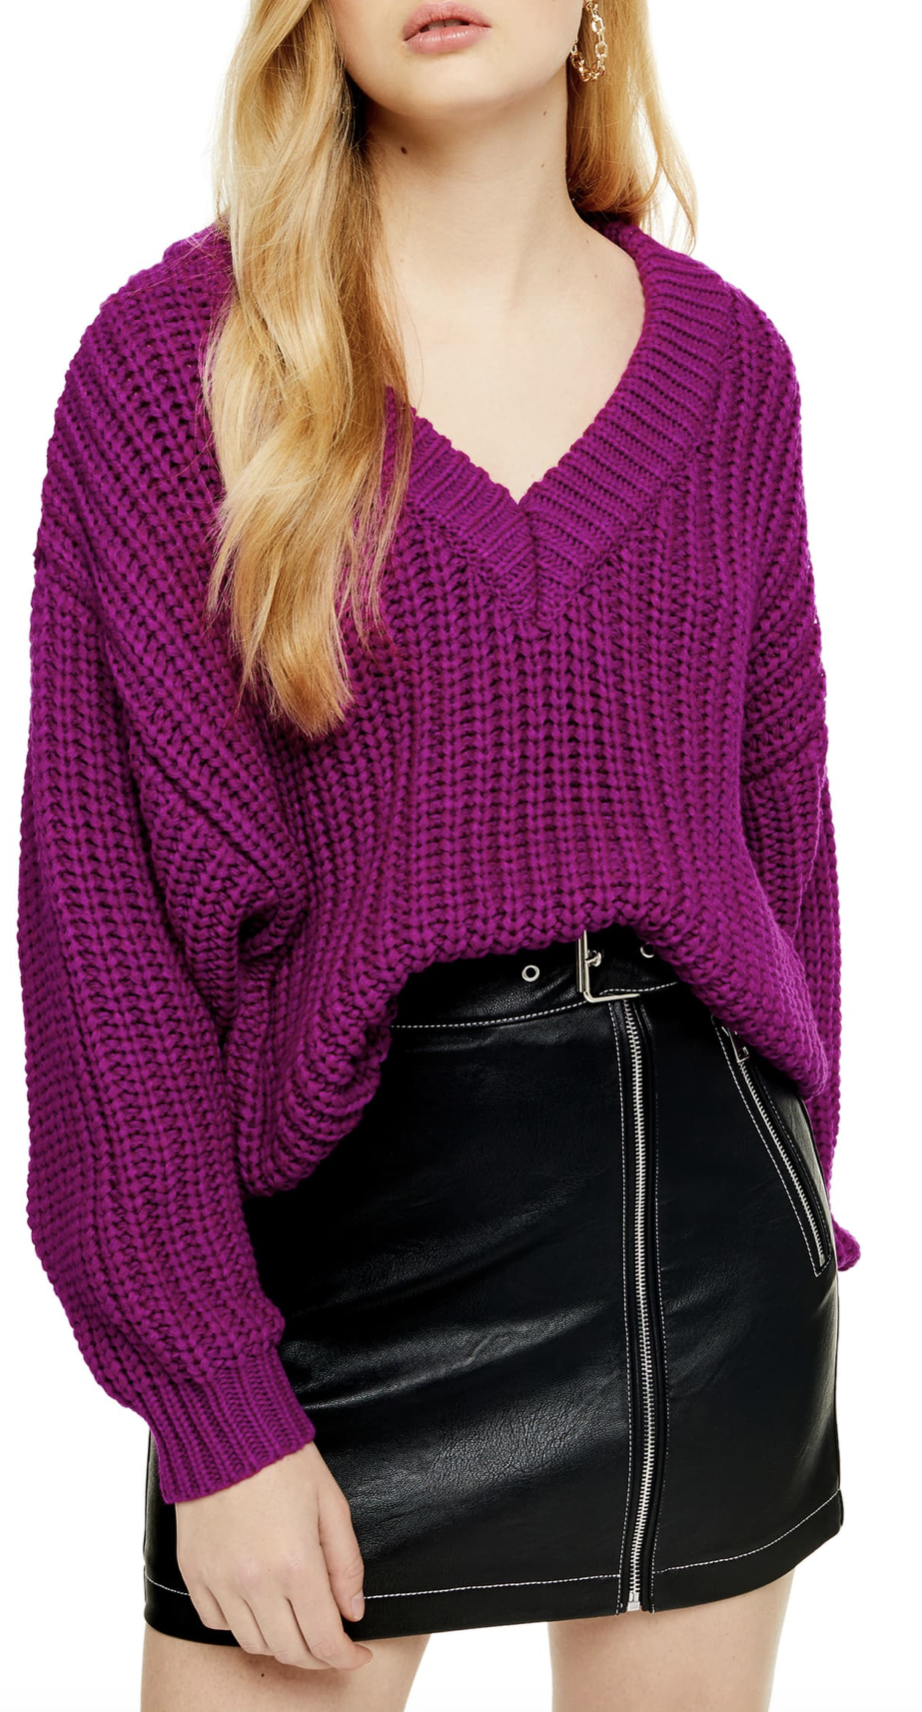 Topshop Oversize V-Neck Sweater - $44.90